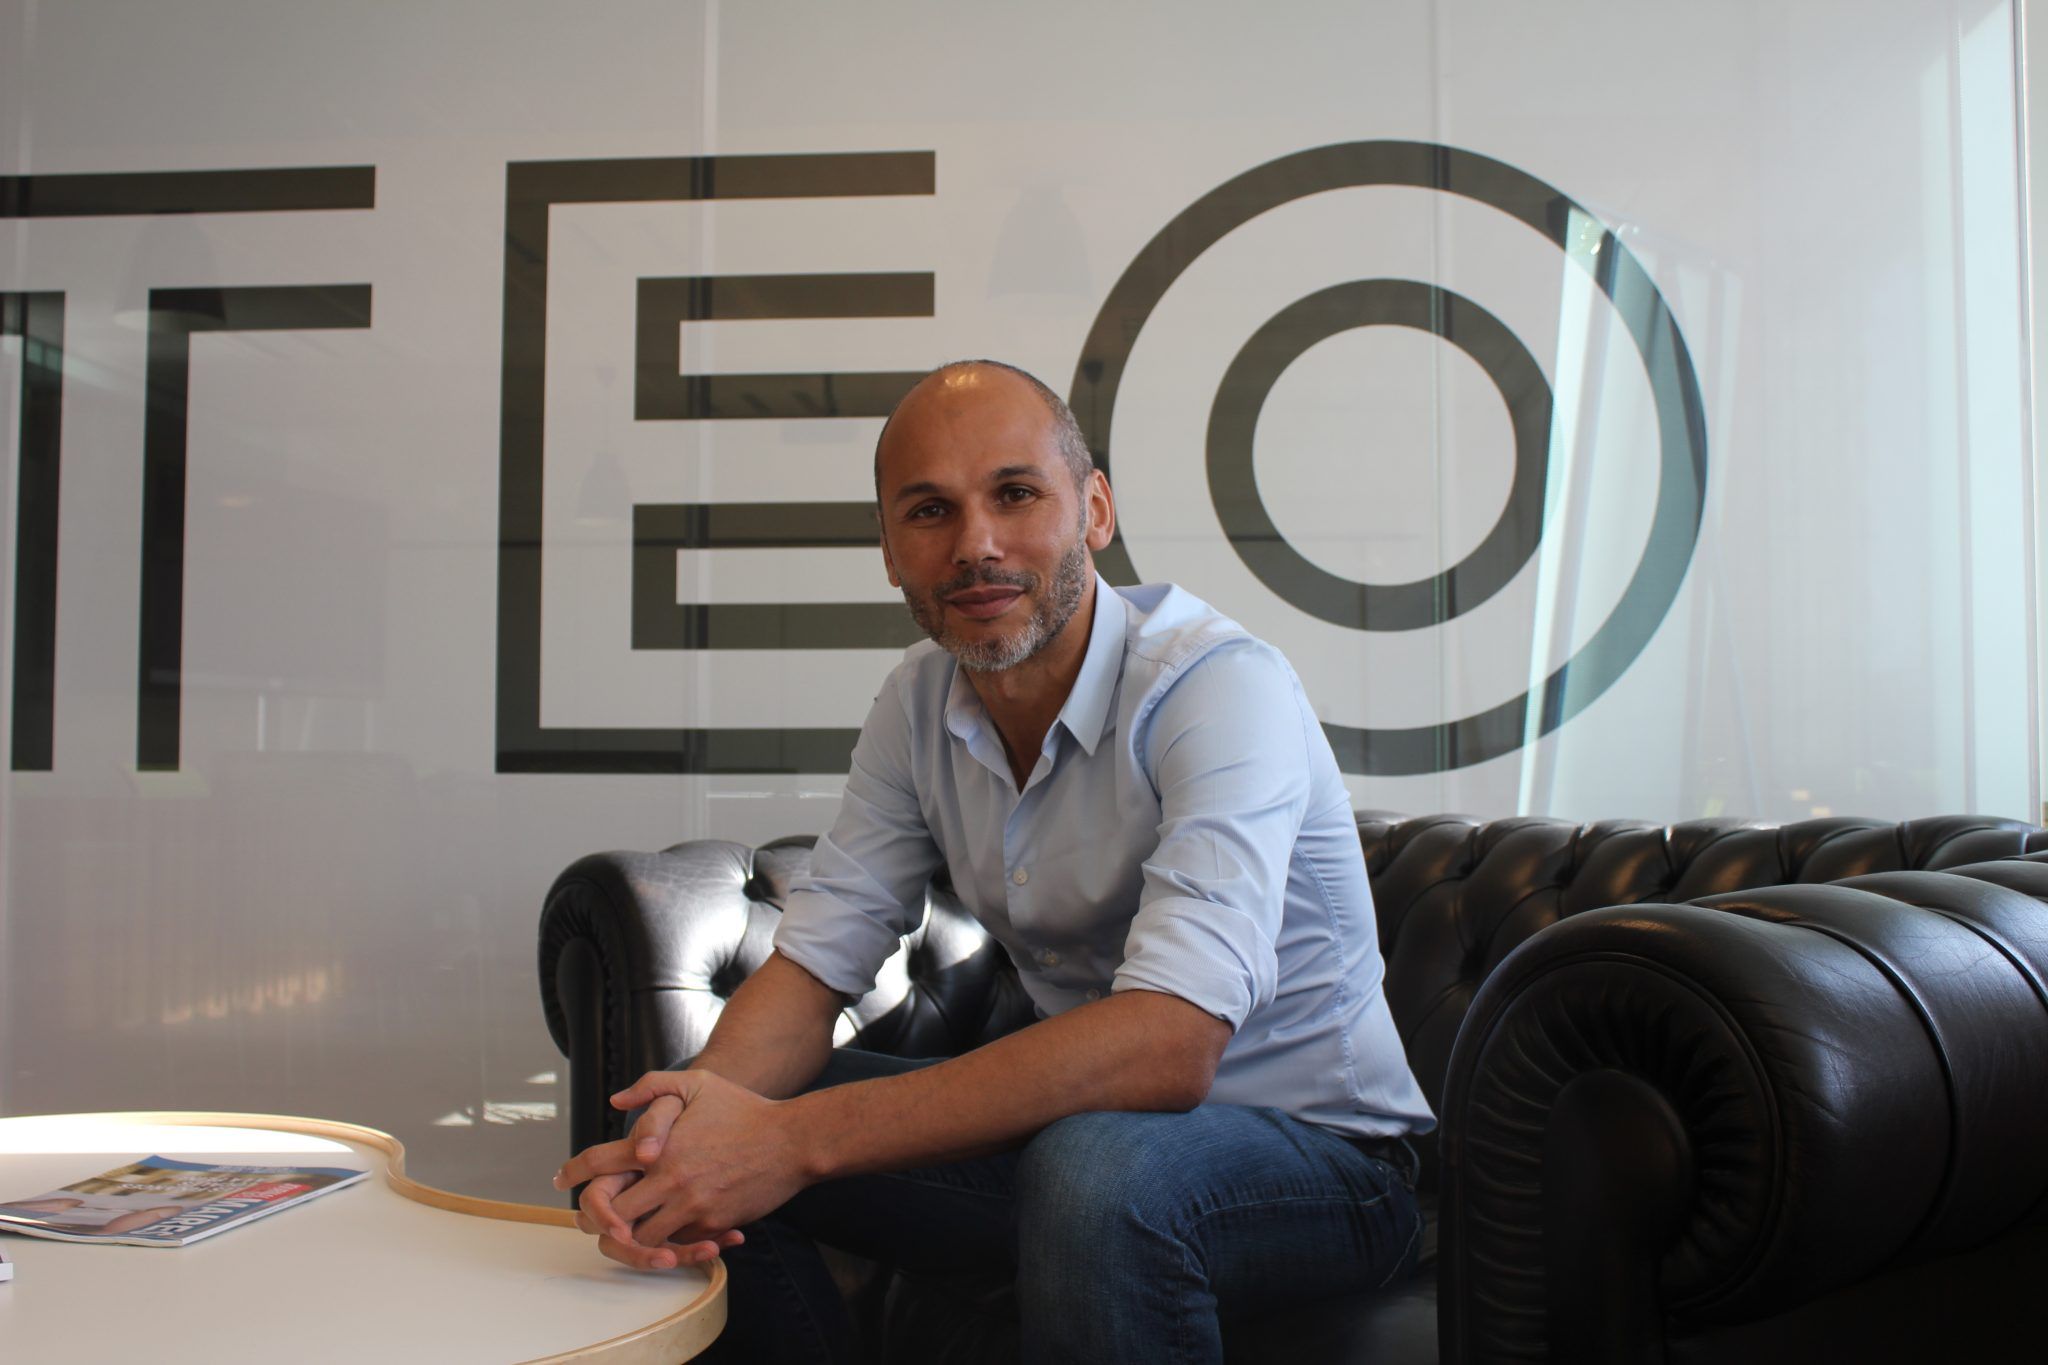 Interview with Frank GANA – Digital & Innovation Director at CITEO